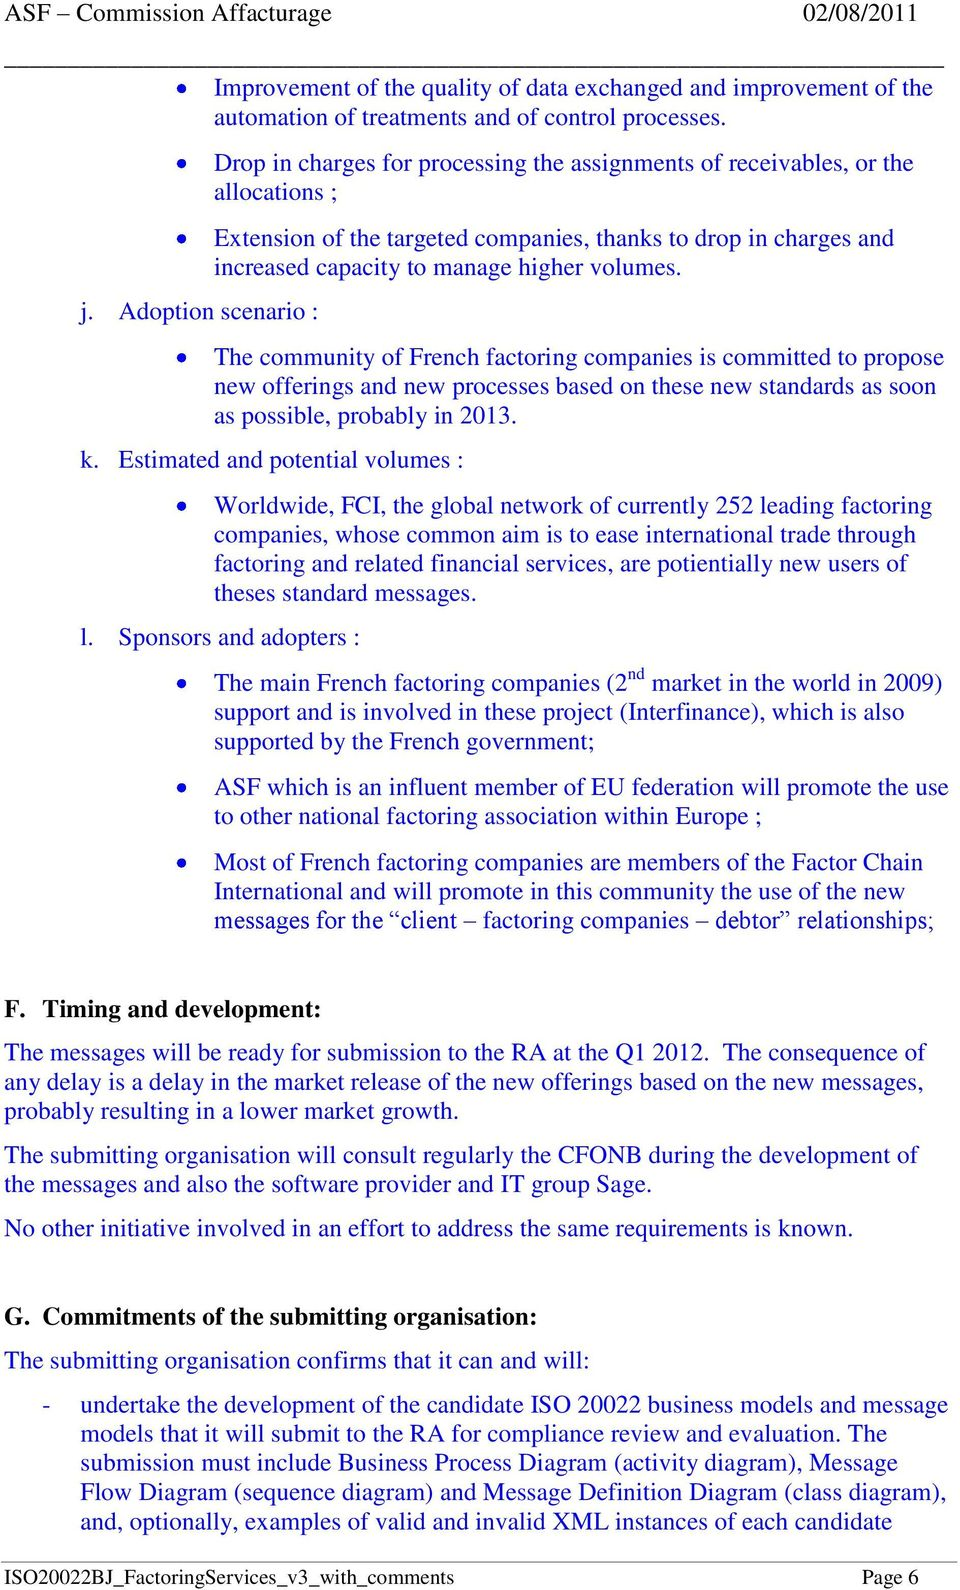 higher volumes. The community of French factoring companies is committed to propose new offerings and new processes based on these new standards as soon as possible, probably in 2013. k.